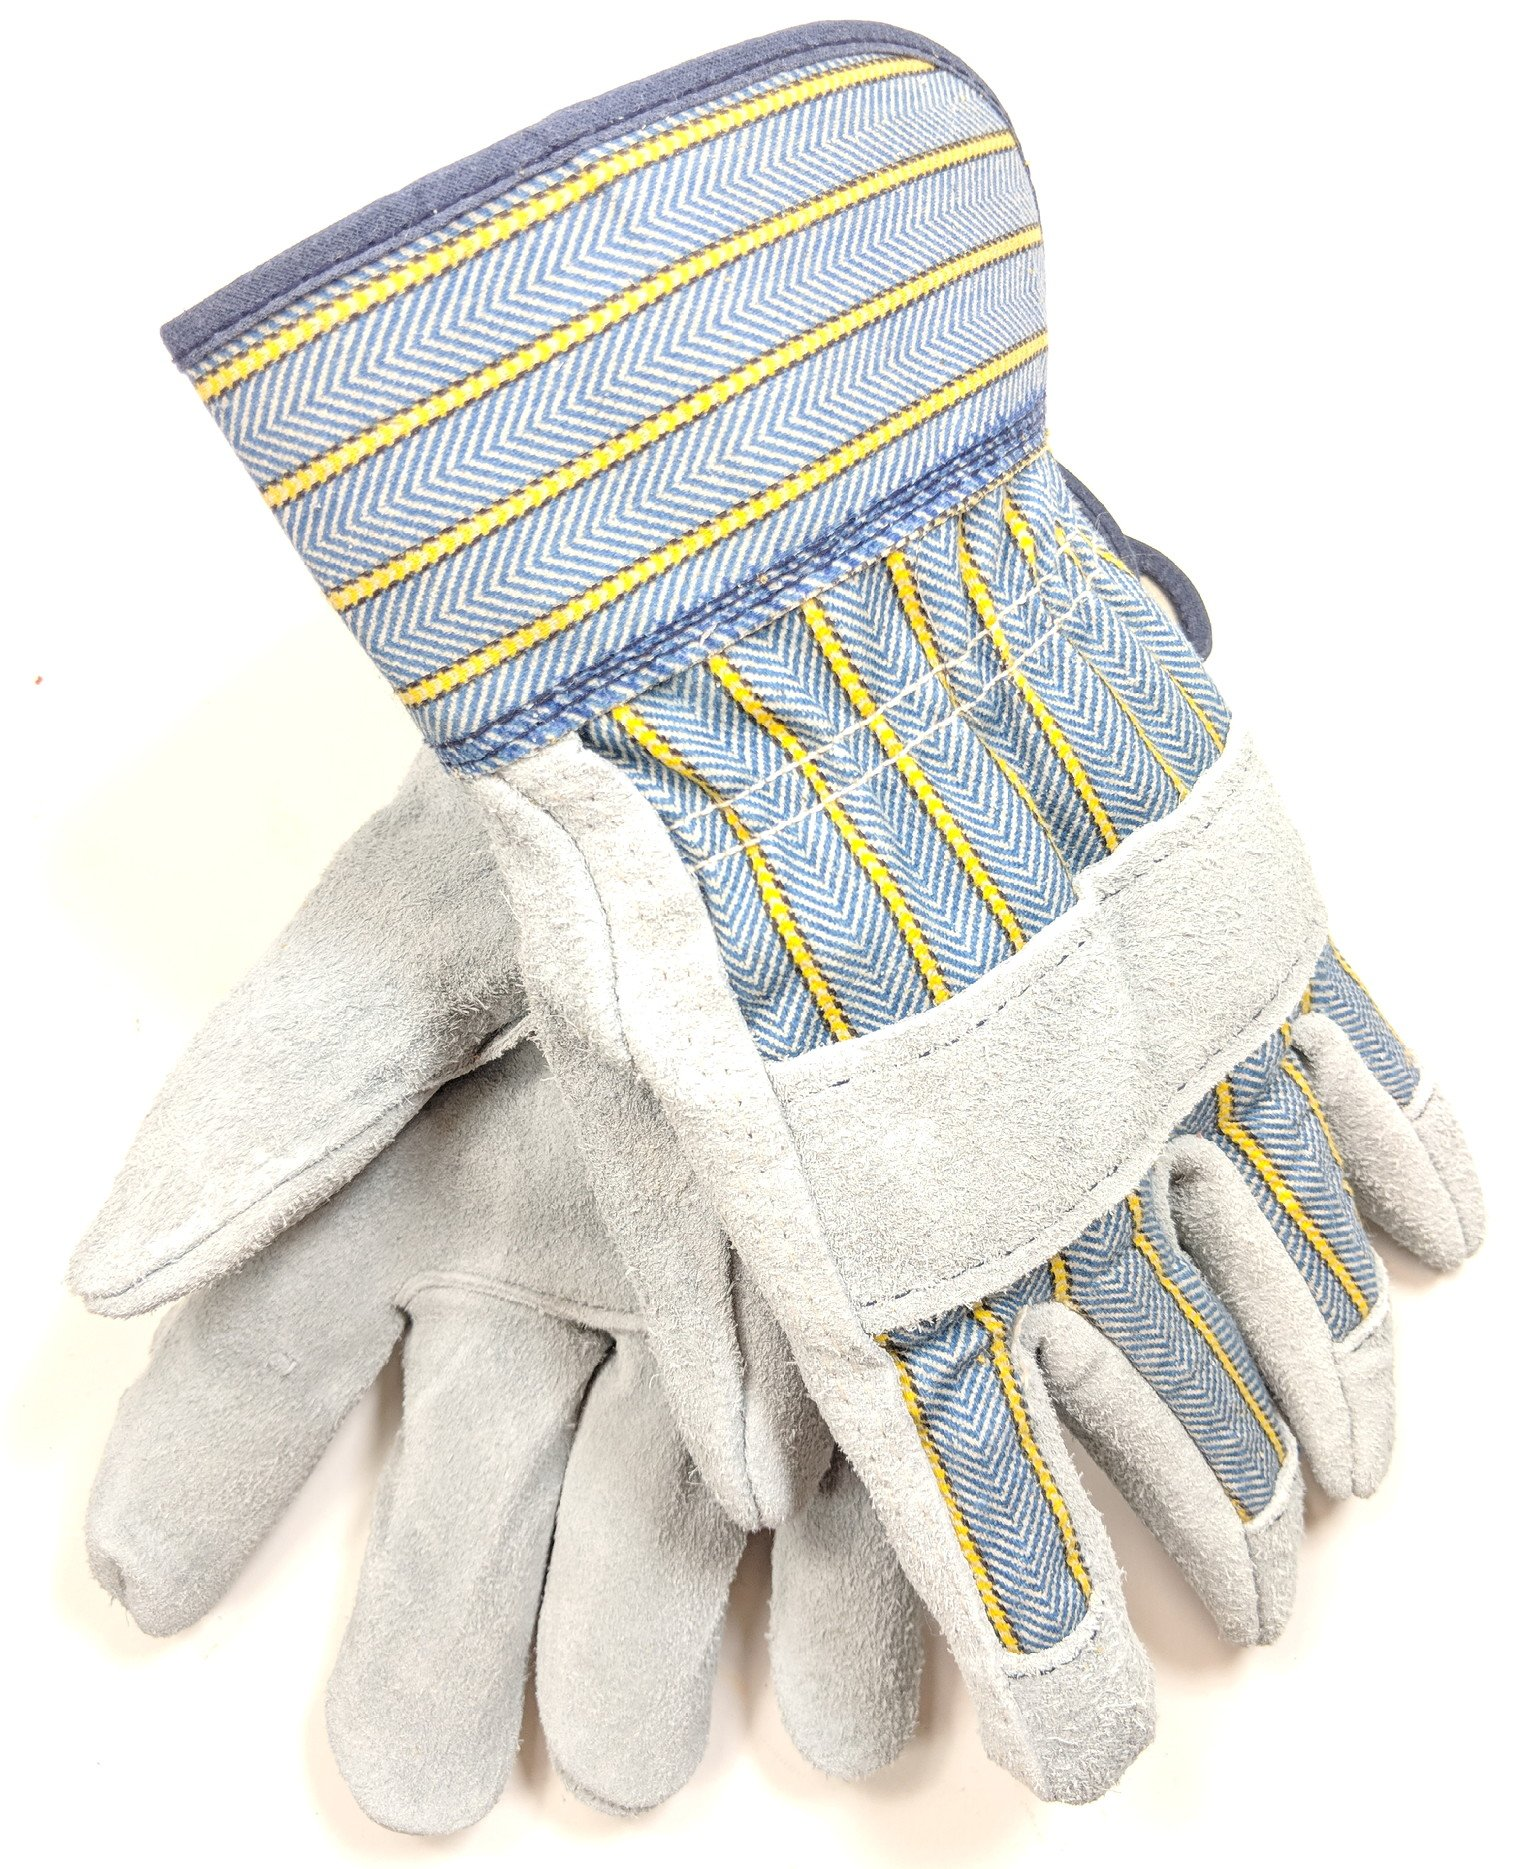 Carolina Glove Large Select Side Split Cowhide Gloves with Short Safety Cuff Made in the USA